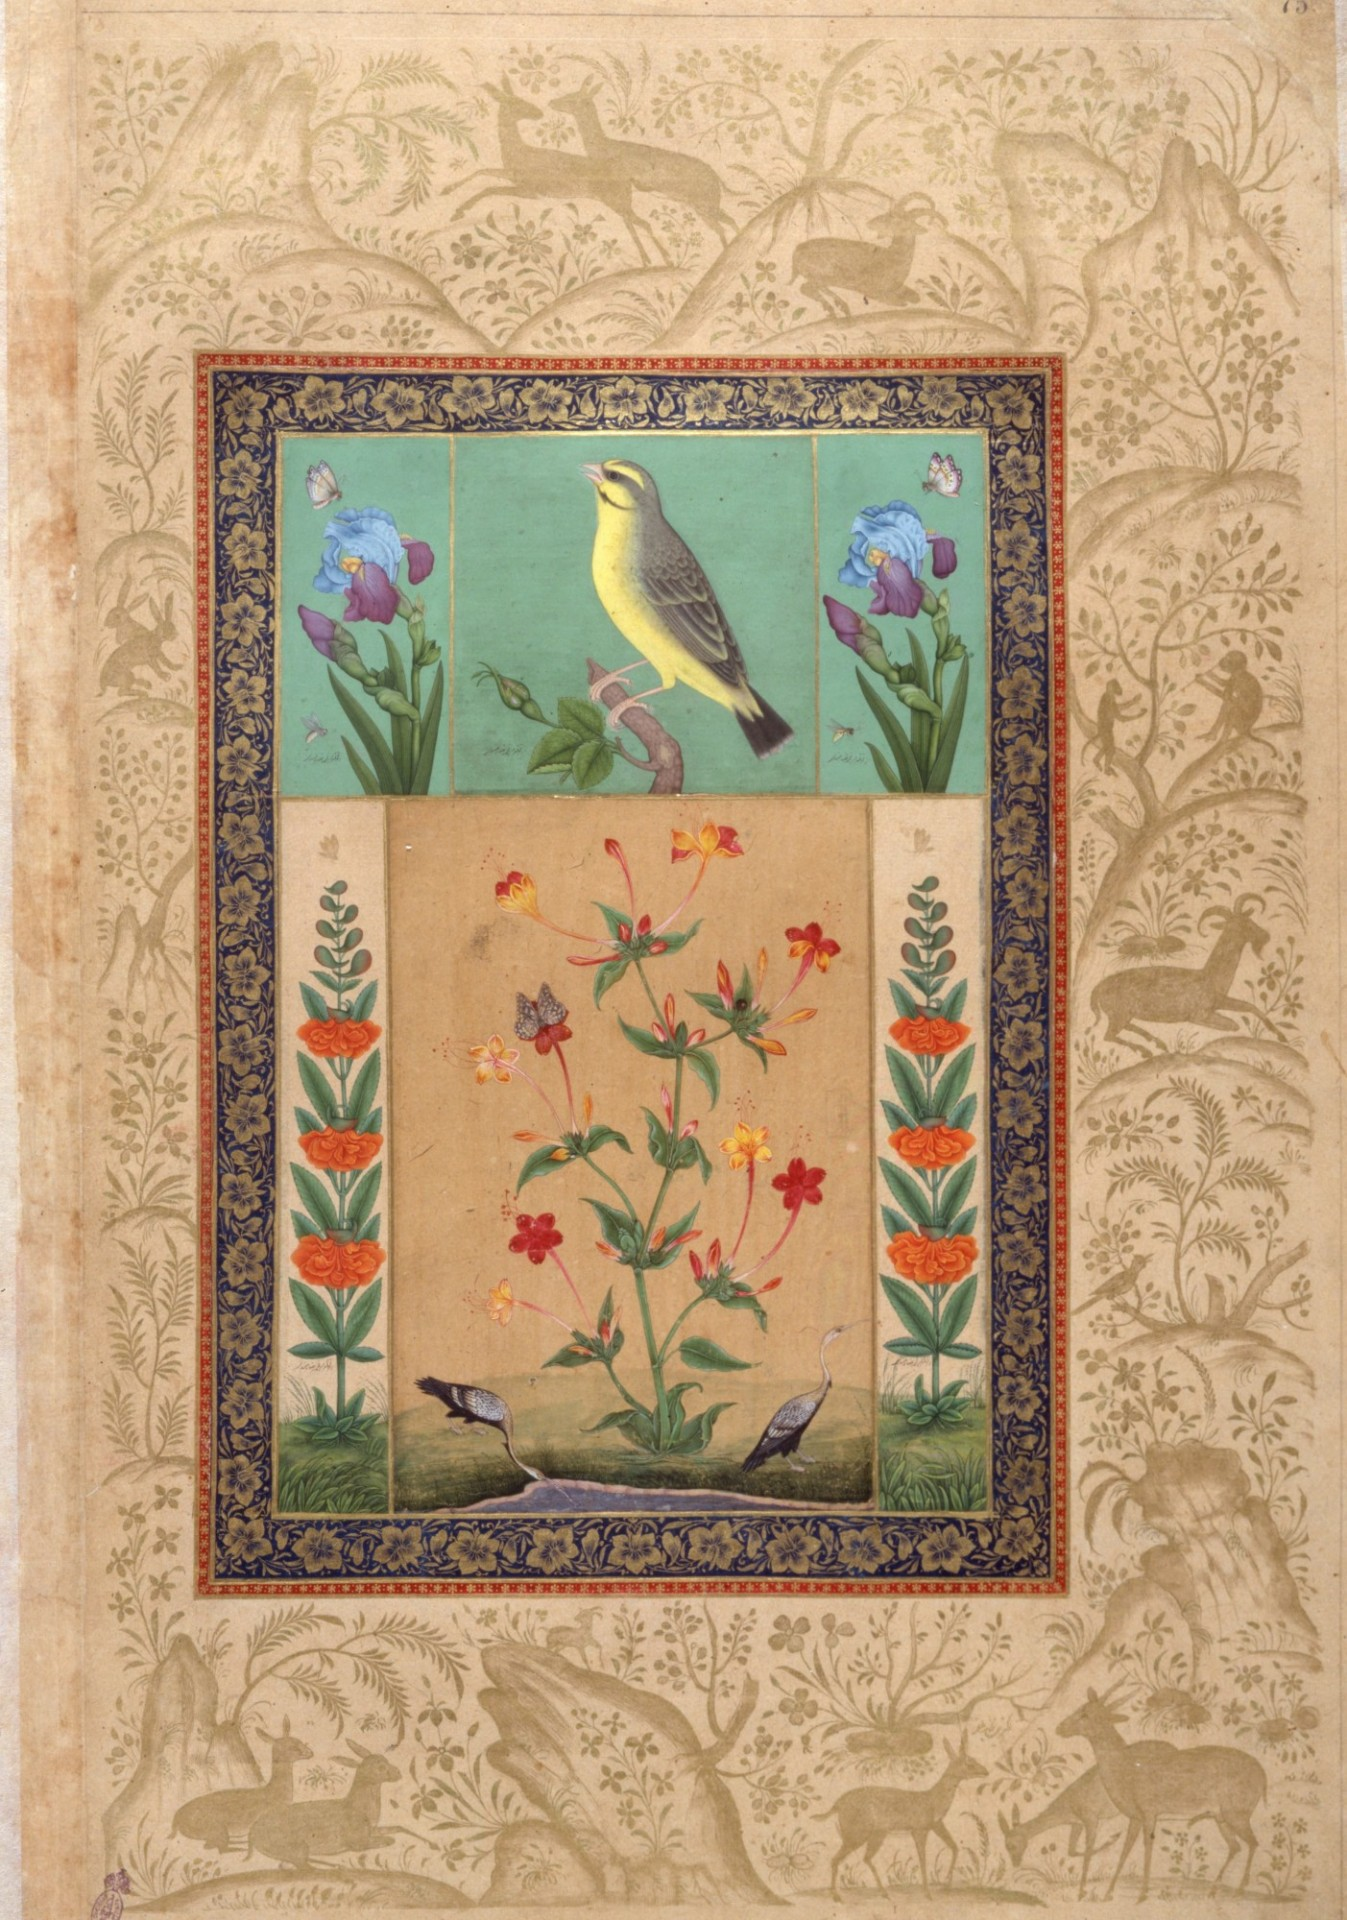 Bird and Flowers (List, no. 121). Iran mid-18thcentury (Institute of Oriental Studies, Russian Academy of Sciences, St. Petersburg, E-14, fol. 75).